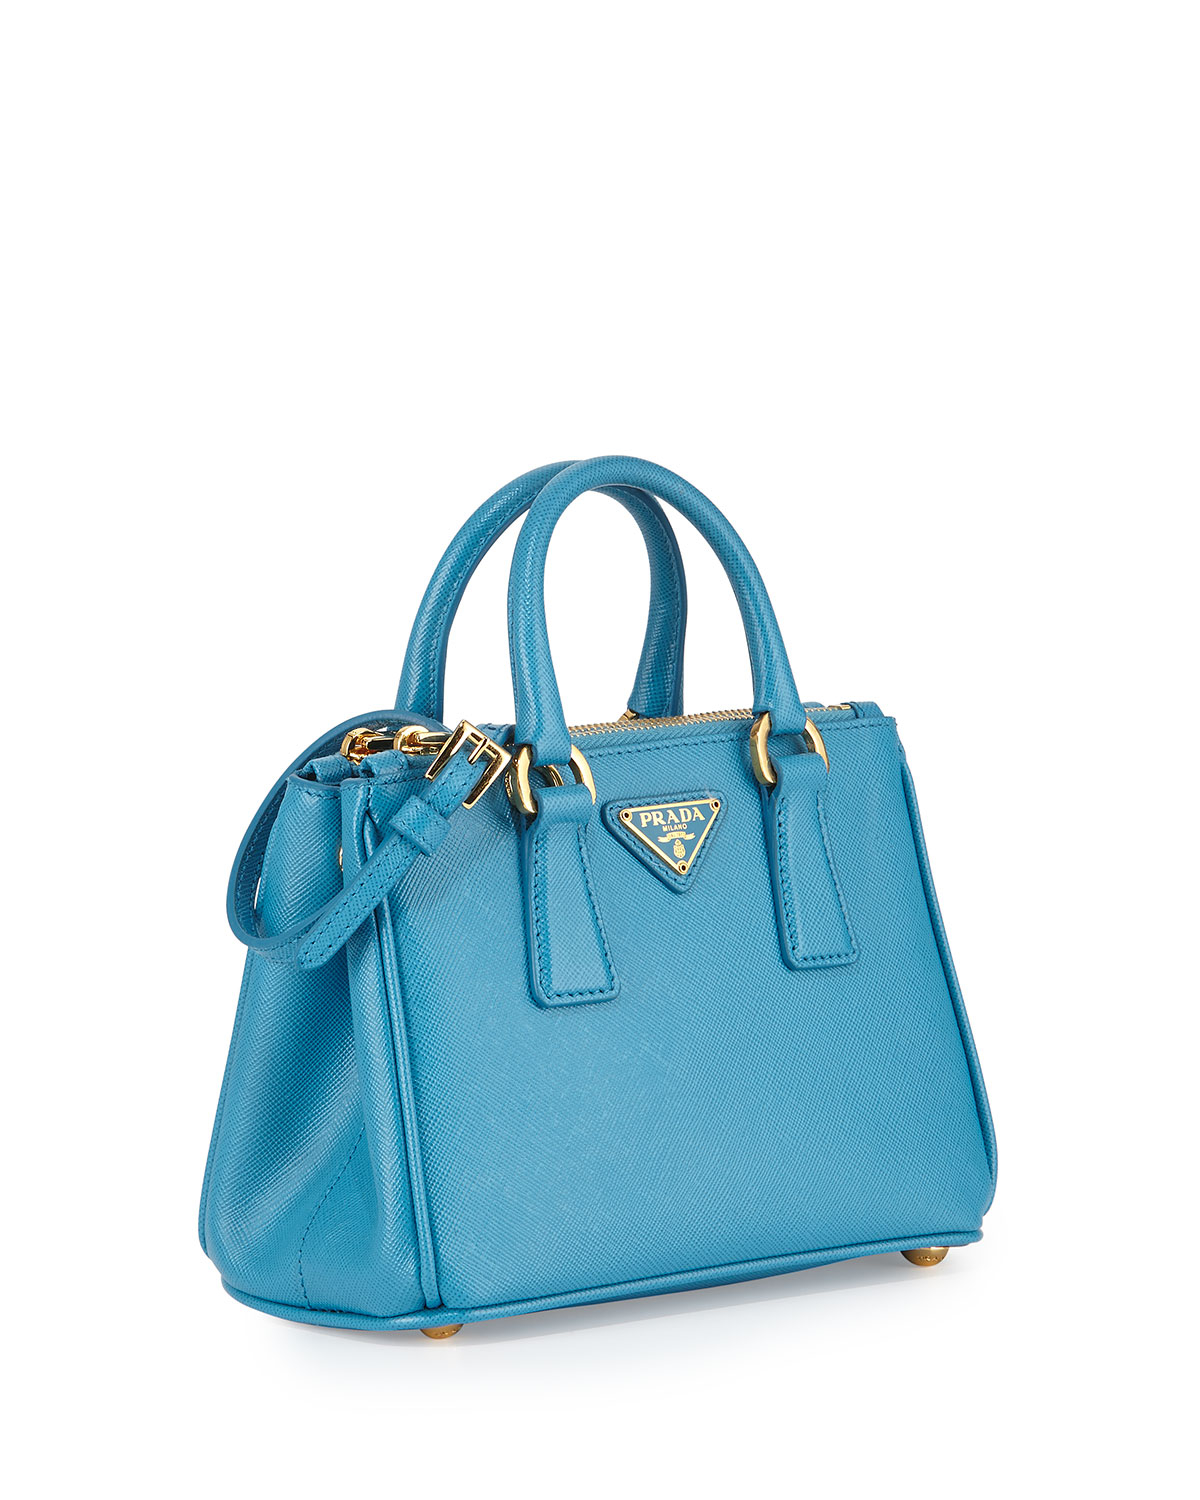 Lyst Prada Saffiano Mini Galleria Crossbody Bag In Blue